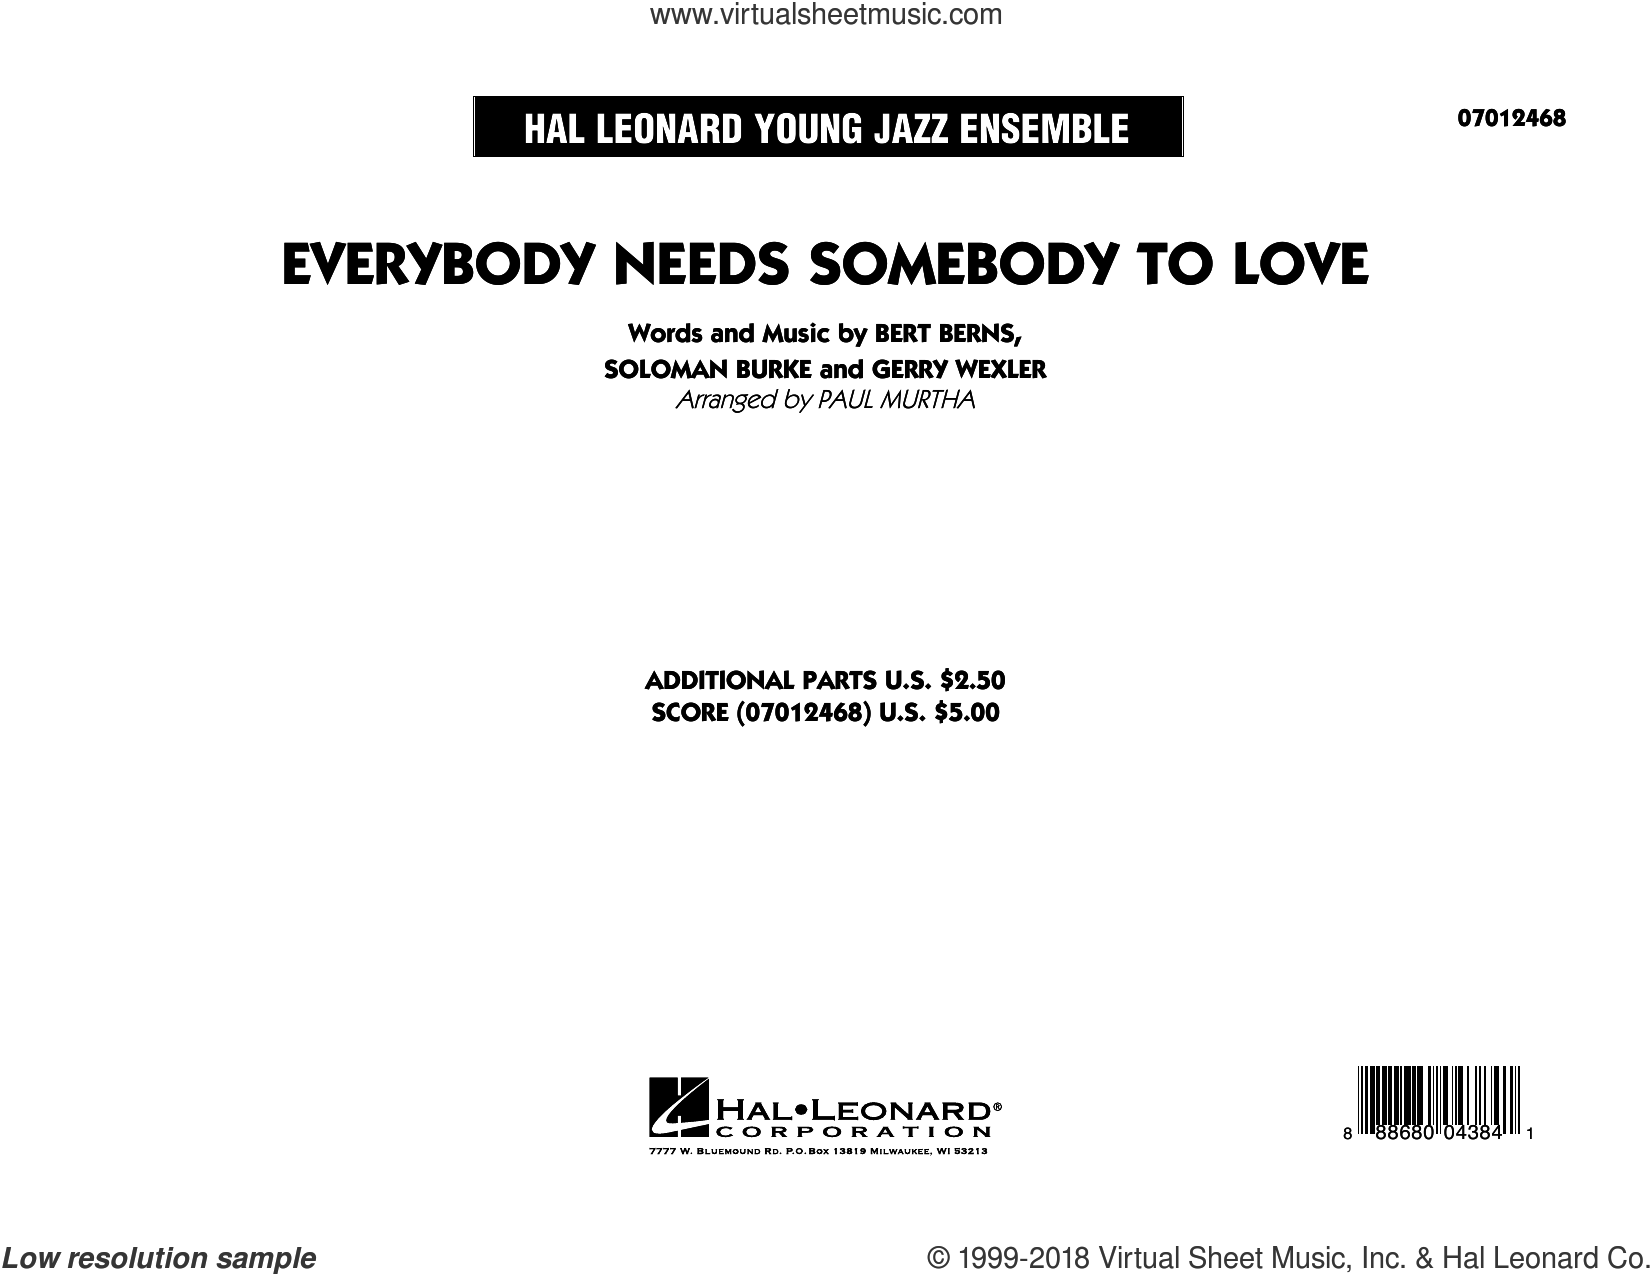 Everybody Needs Somebody to Love (COMPLETE) sheet music for jazz band by Paul Murtha, The Blues Brothers, Wilson Pickett, Bert Berns, Gerry Wexler and Soloman Burke, intermediate skill level